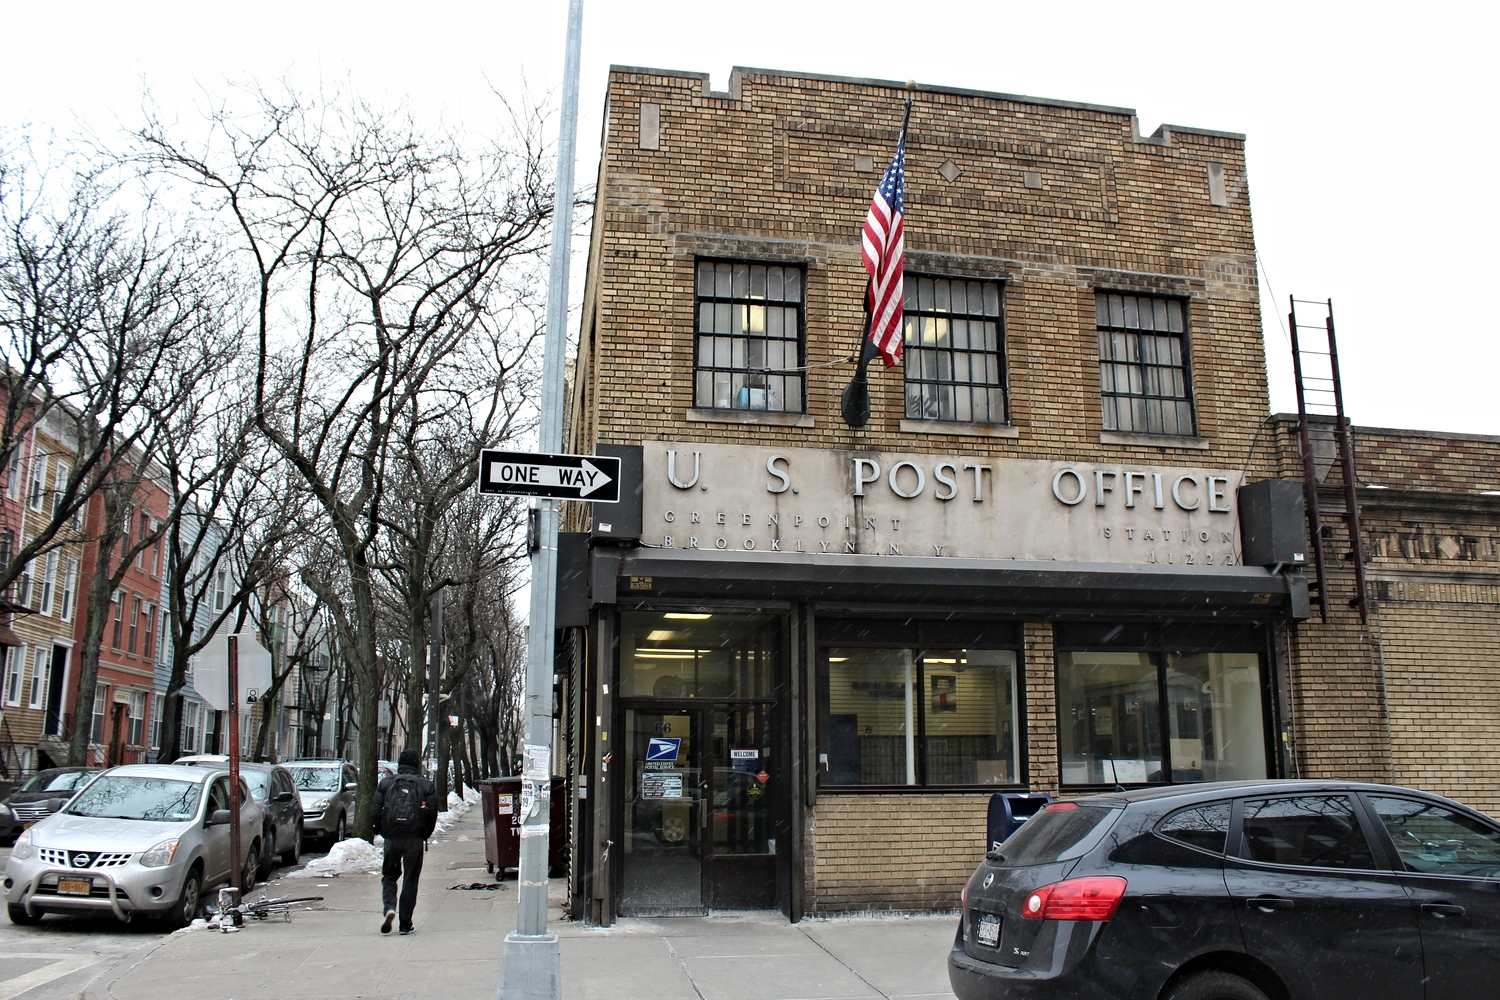 The Greenpoint US Post Office.